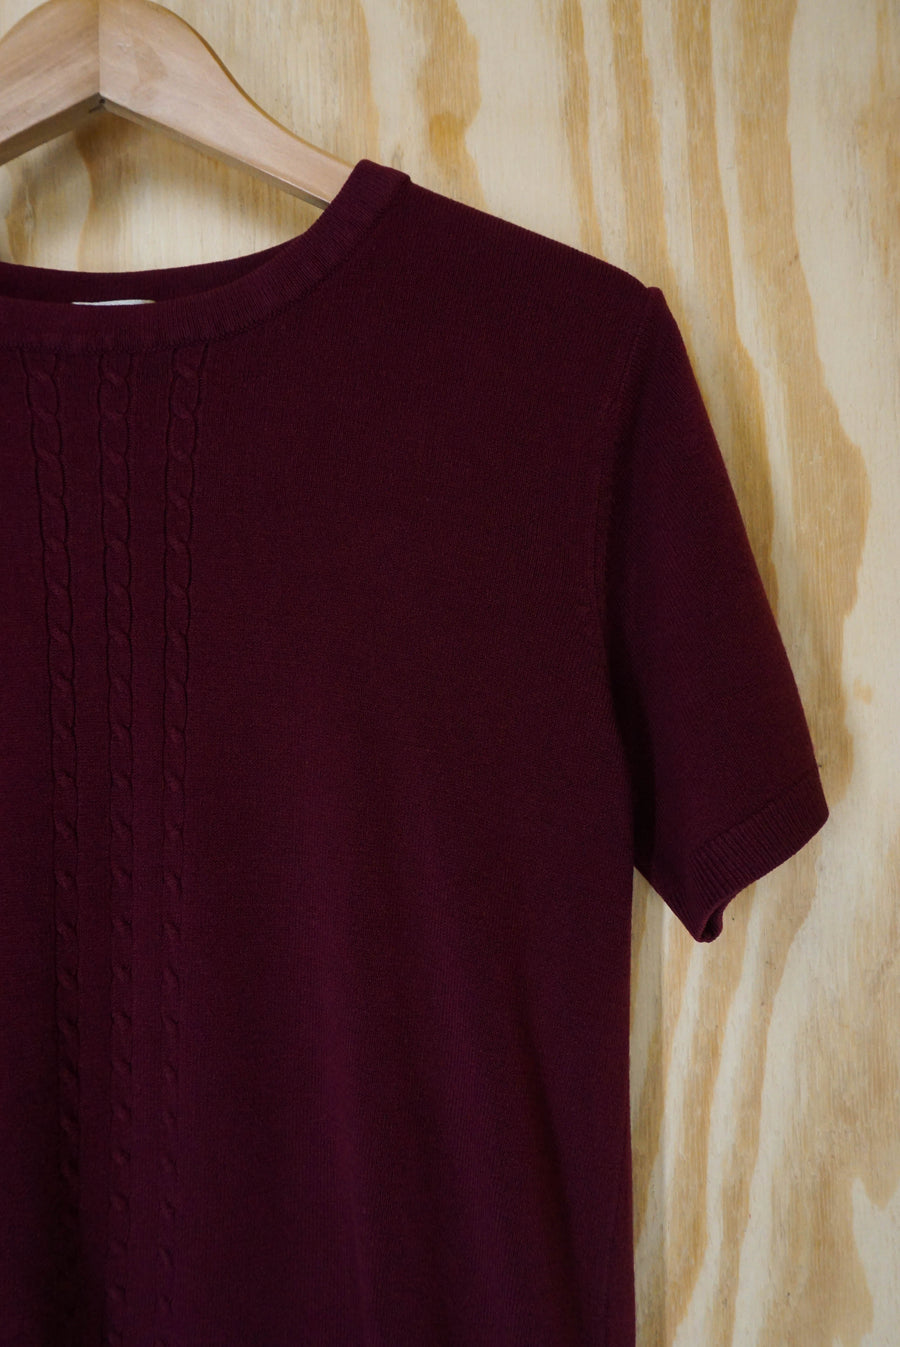 Short sleeve knit top maroon - size M/L